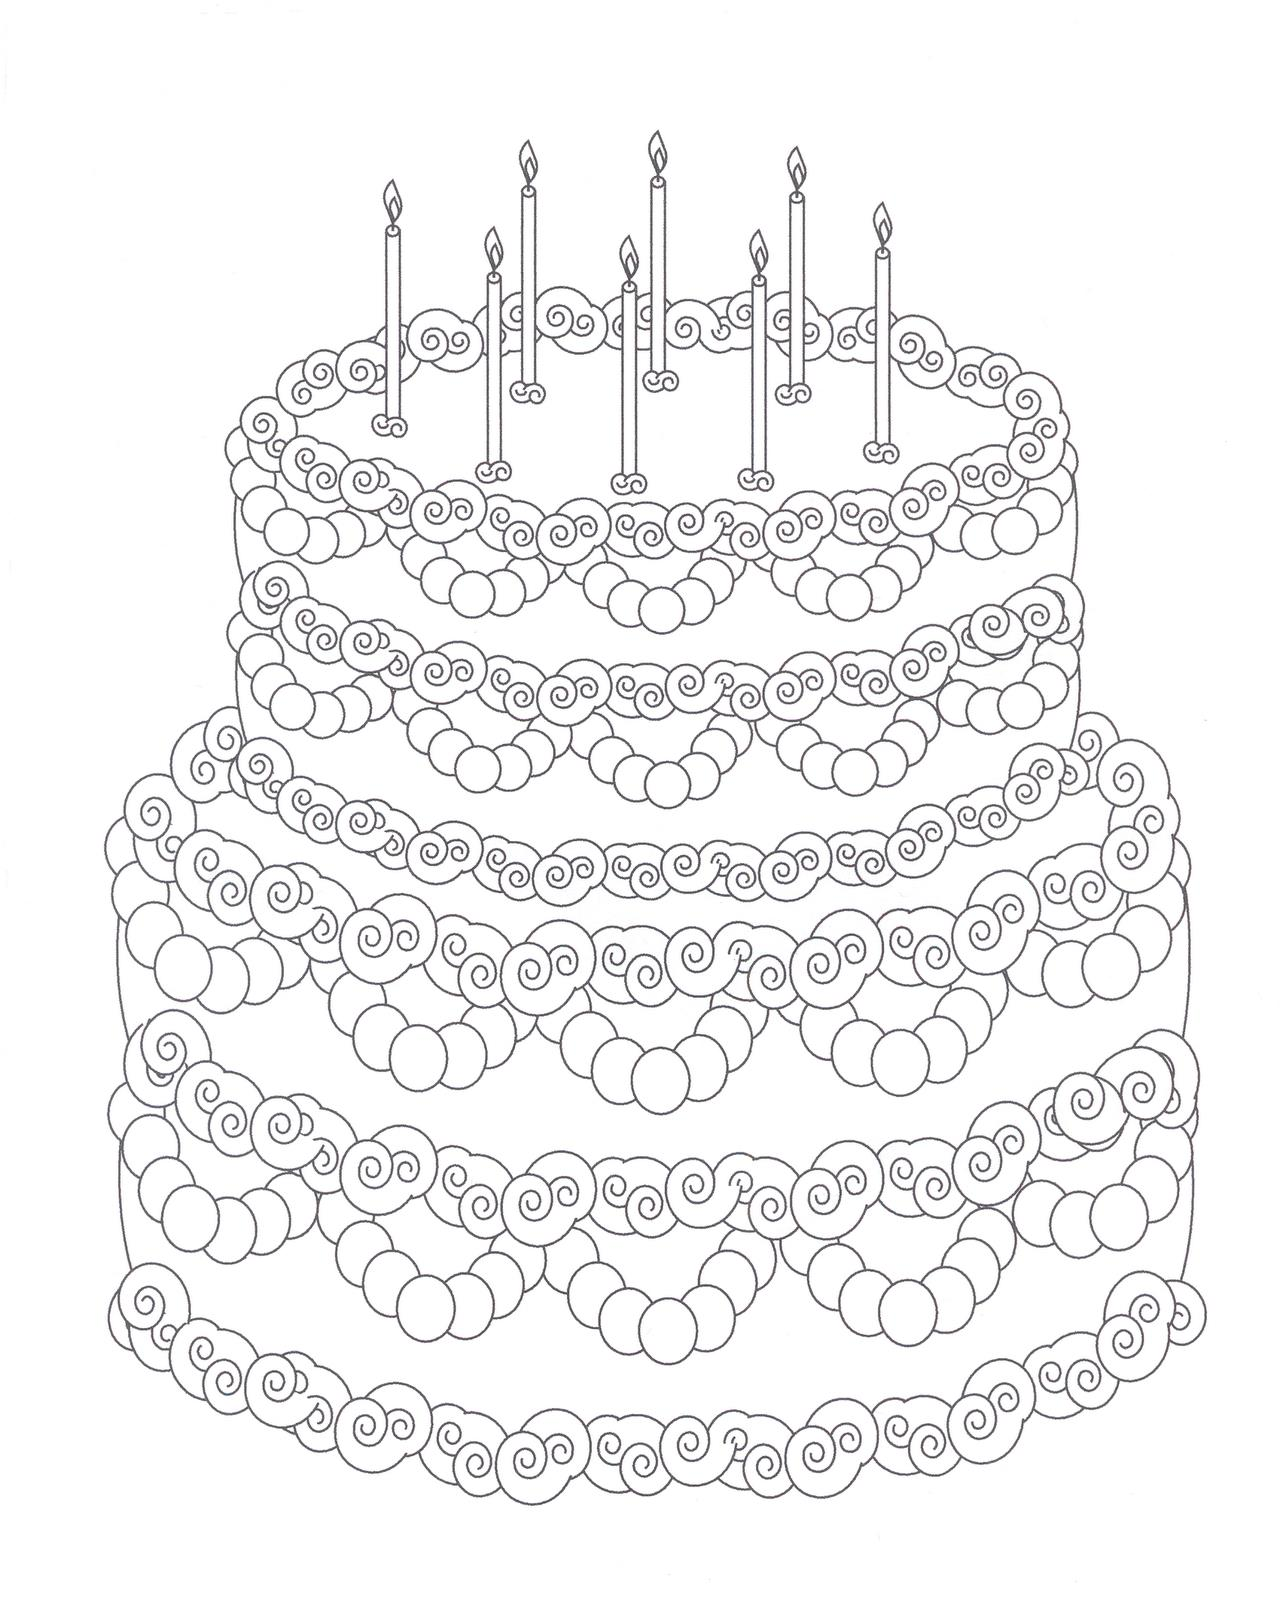 birthday cake coloring pages free ; Cake-coloring-pages-free-to-print